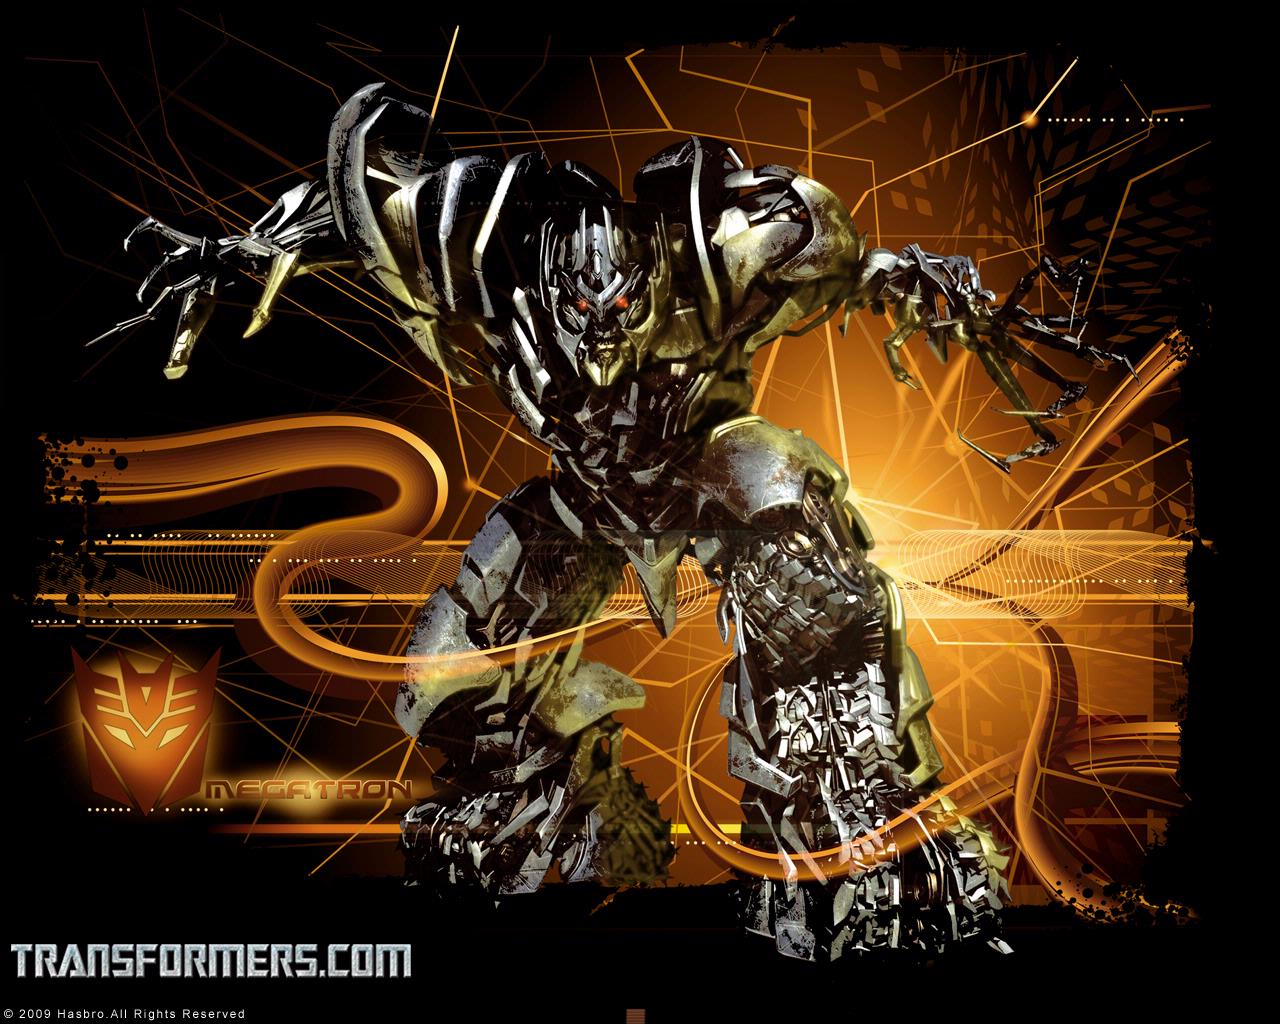 wallpaper transformers - movies transformers: revenge of the fallen